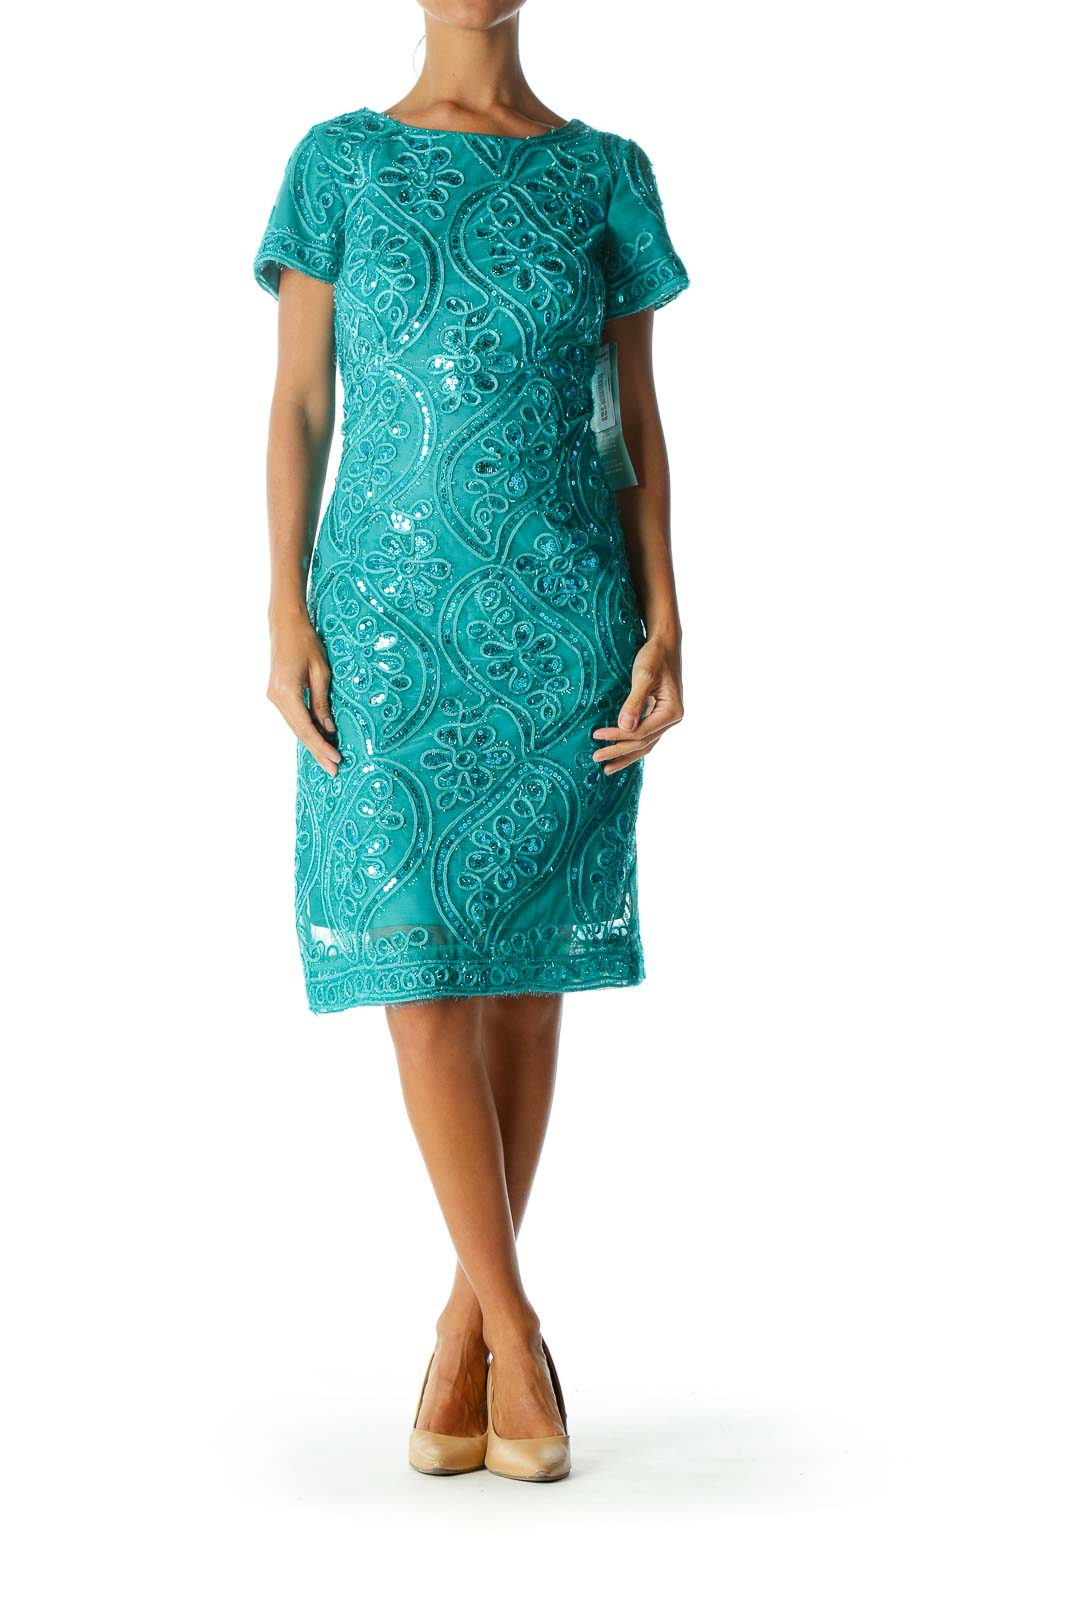 Green Metallic Low Back Cocktail Dress